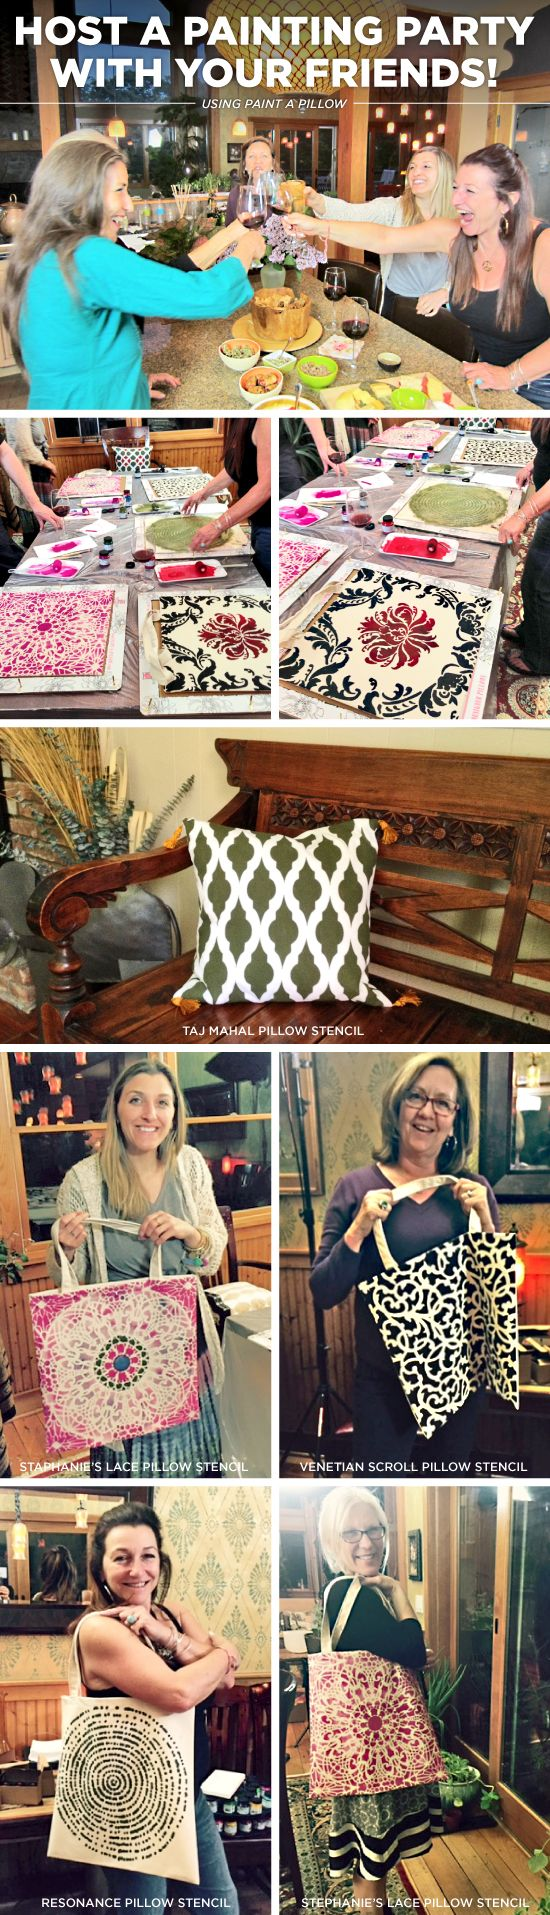 Host A Painting Party With Your Friends Girls night